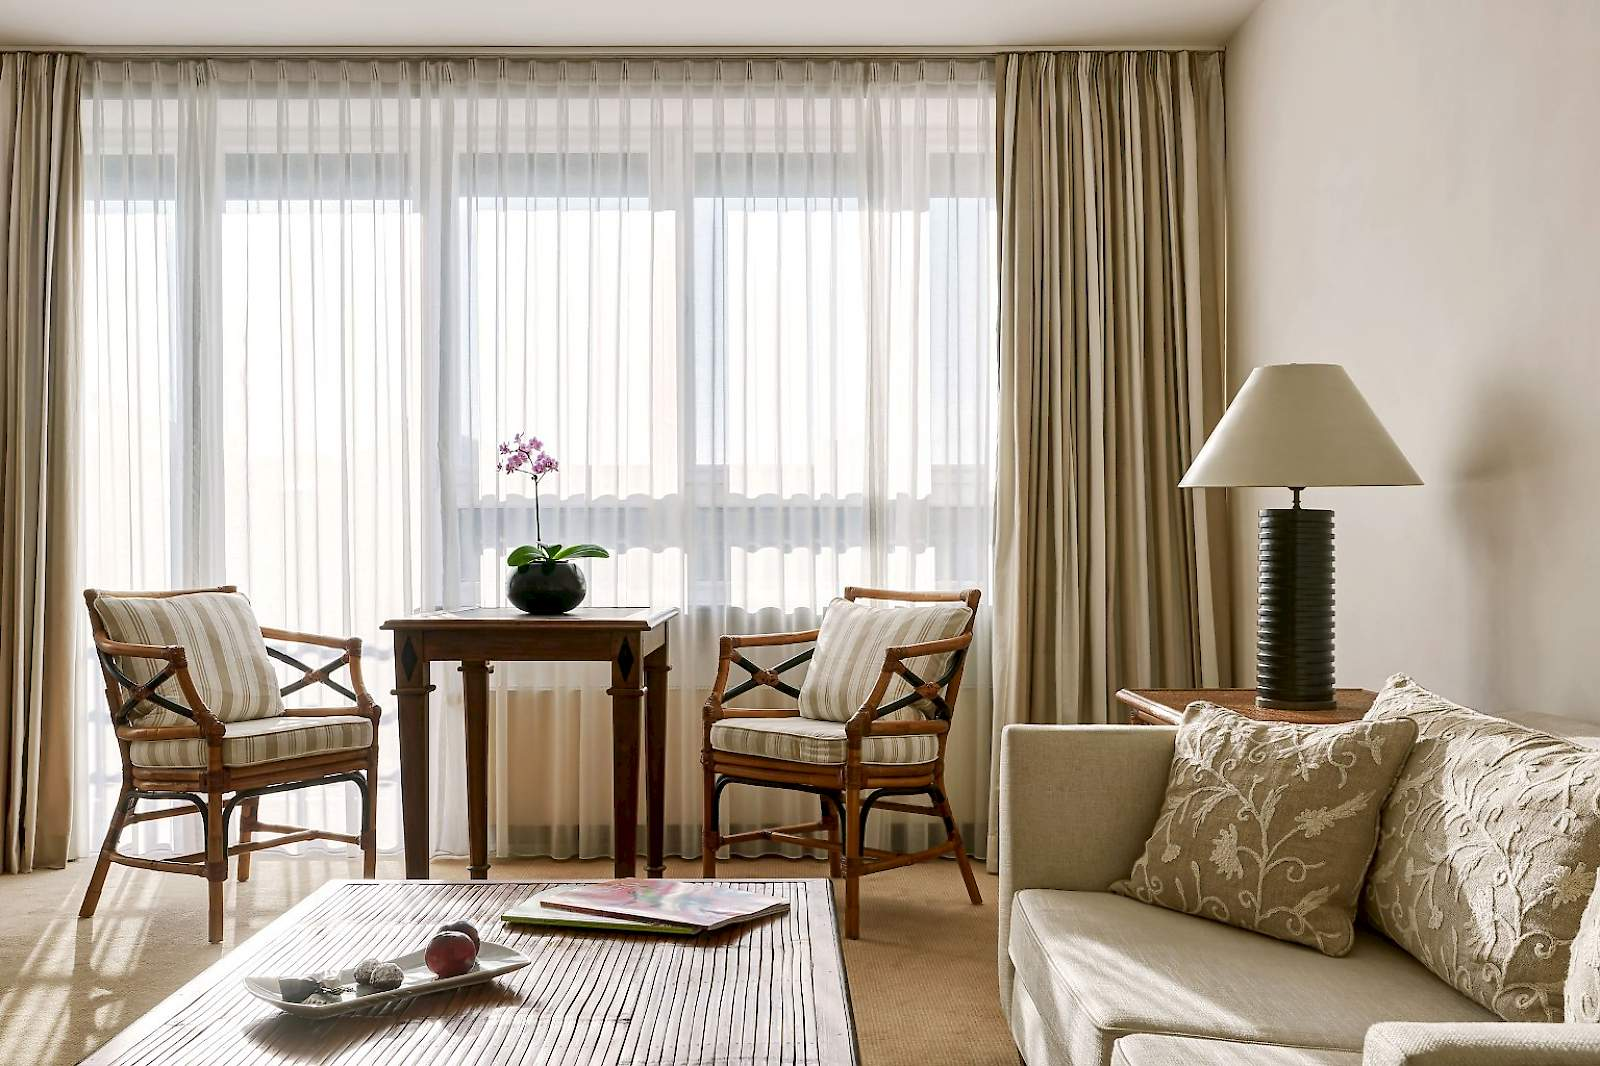 Our Mandala Suites are elegant and restrained at The Mandala Suites